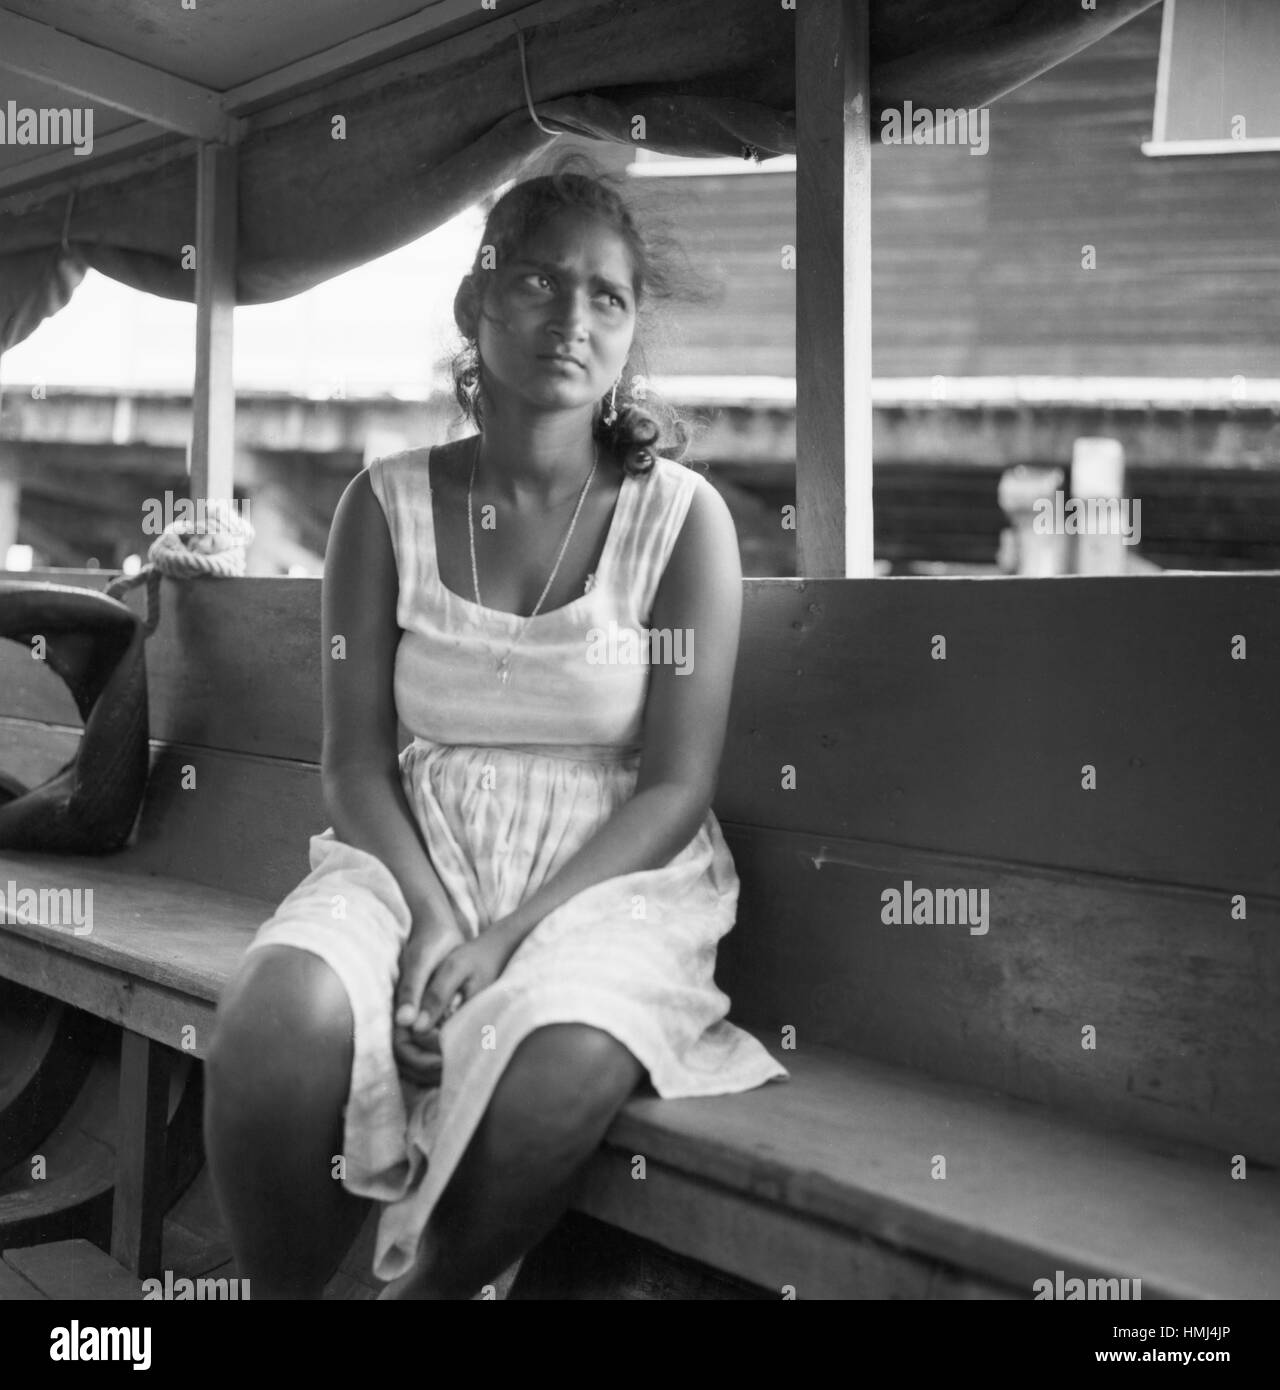 Mädchen auf Boot, Suriname 1966. Girl on a boat, Suriname 1966. - Stock Image